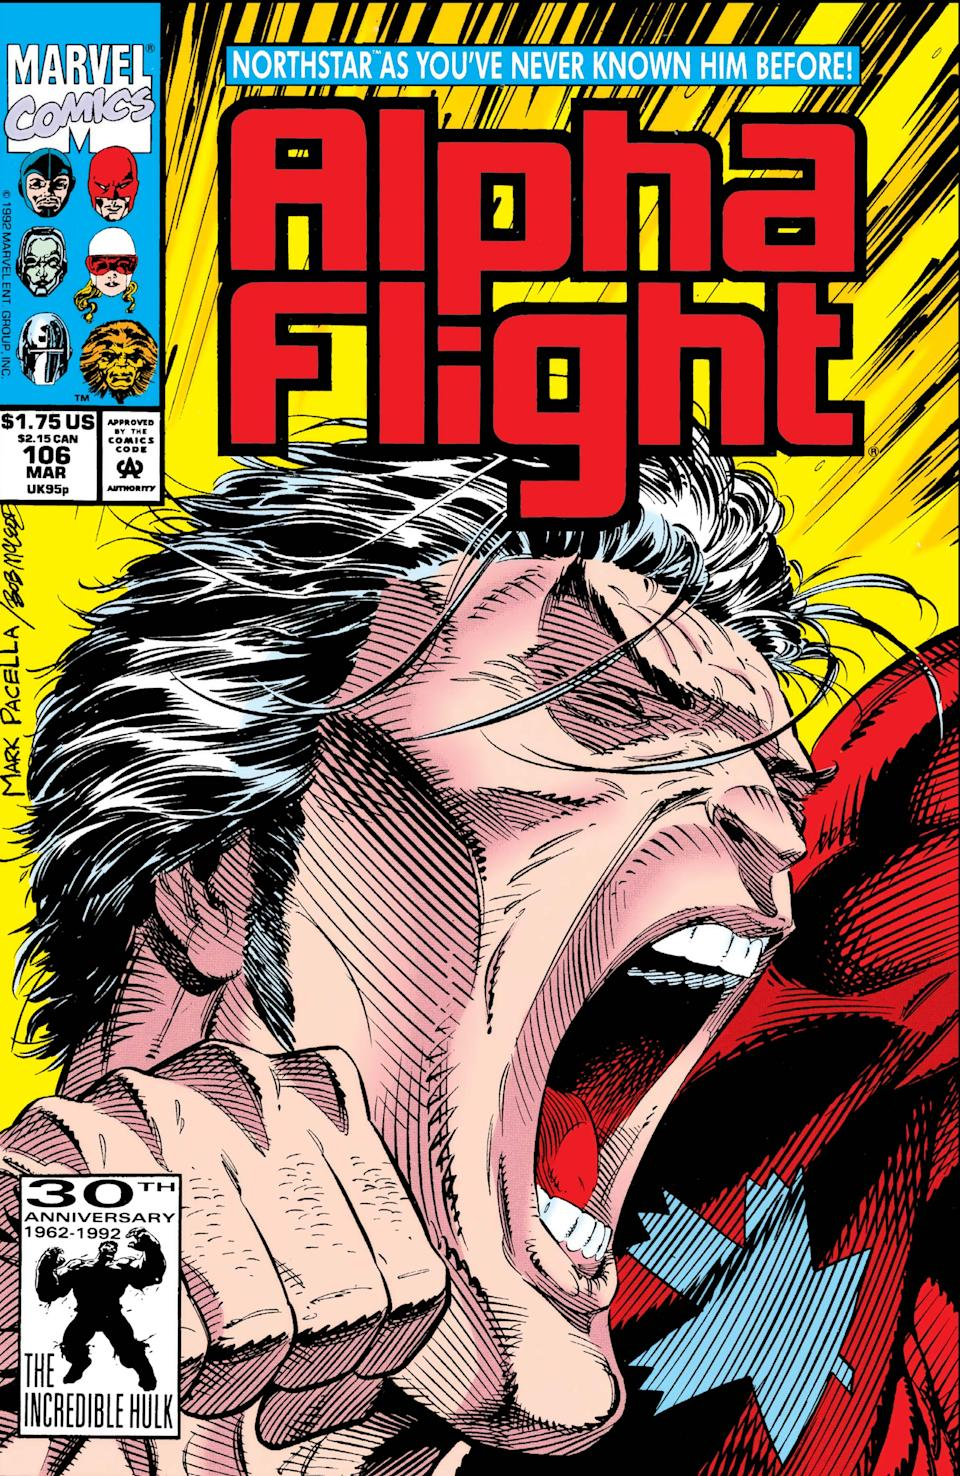 The Marvel hero Northstar came out of the closet in a pivotal 1992 'Alpha Flight' issue. (Photo: Marvel)